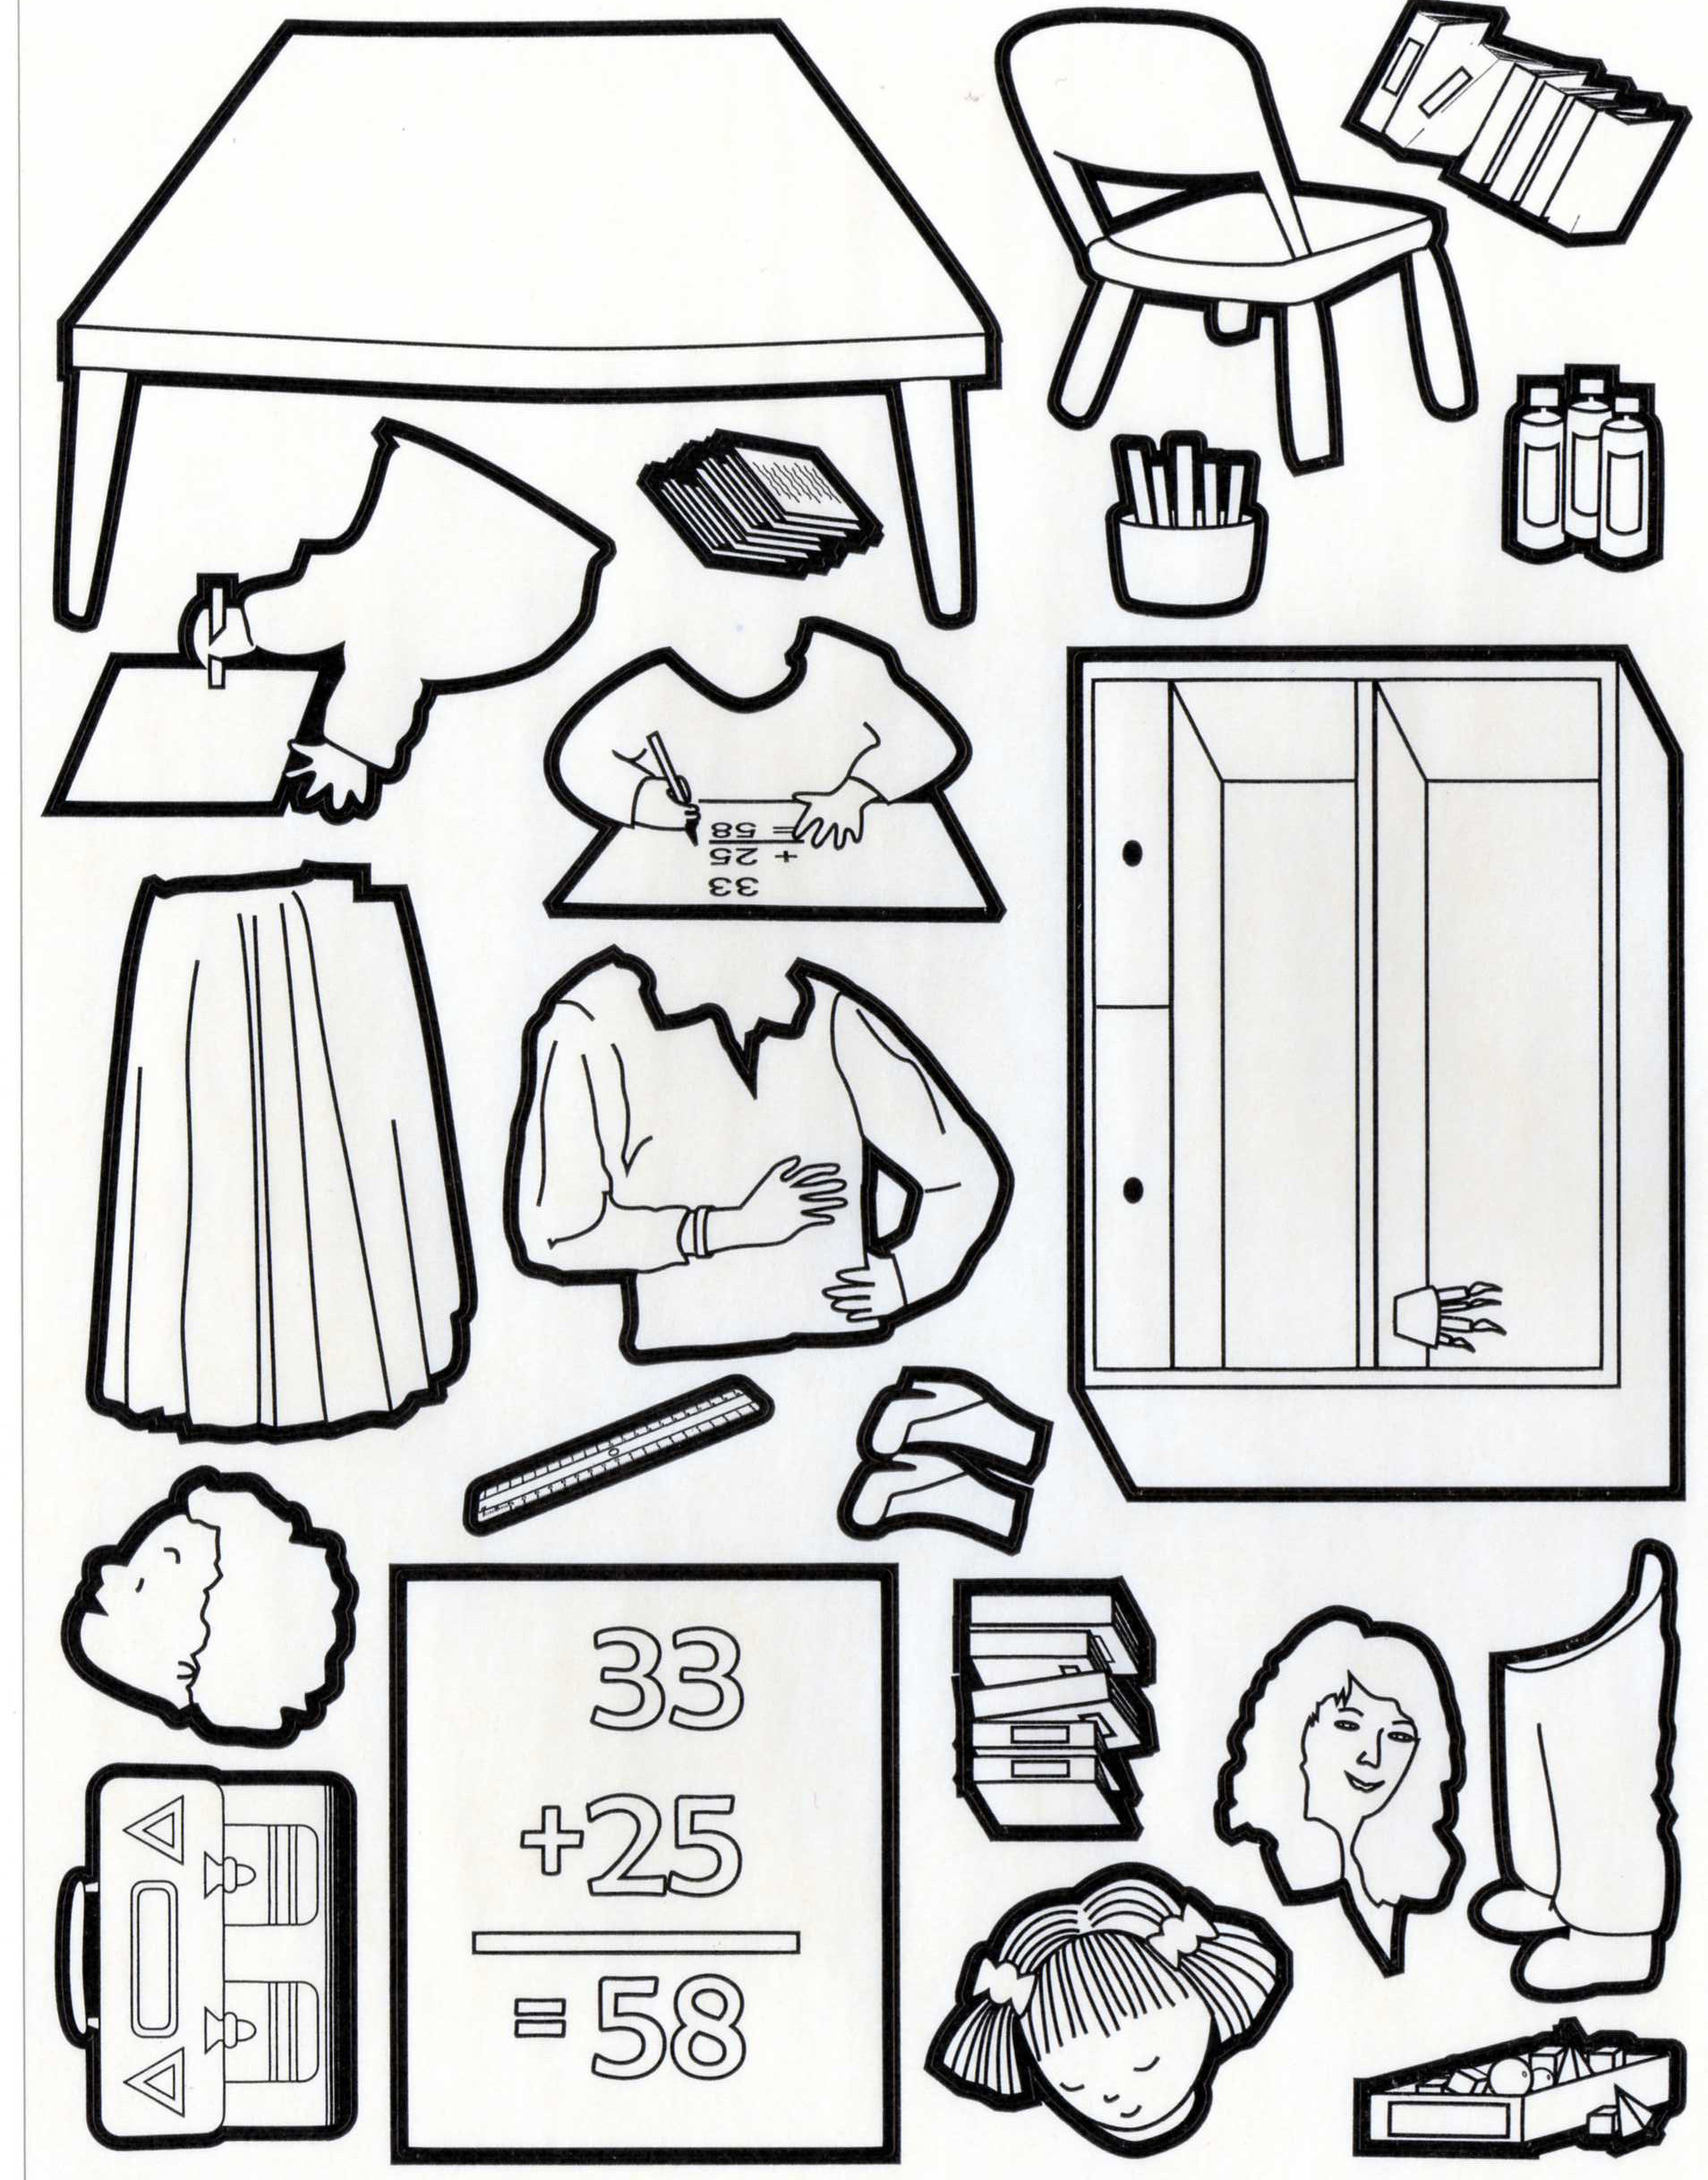 Hervorragend Rentree des classes 4 | Coloriage Rentrée des classes - Coloriages  GO34